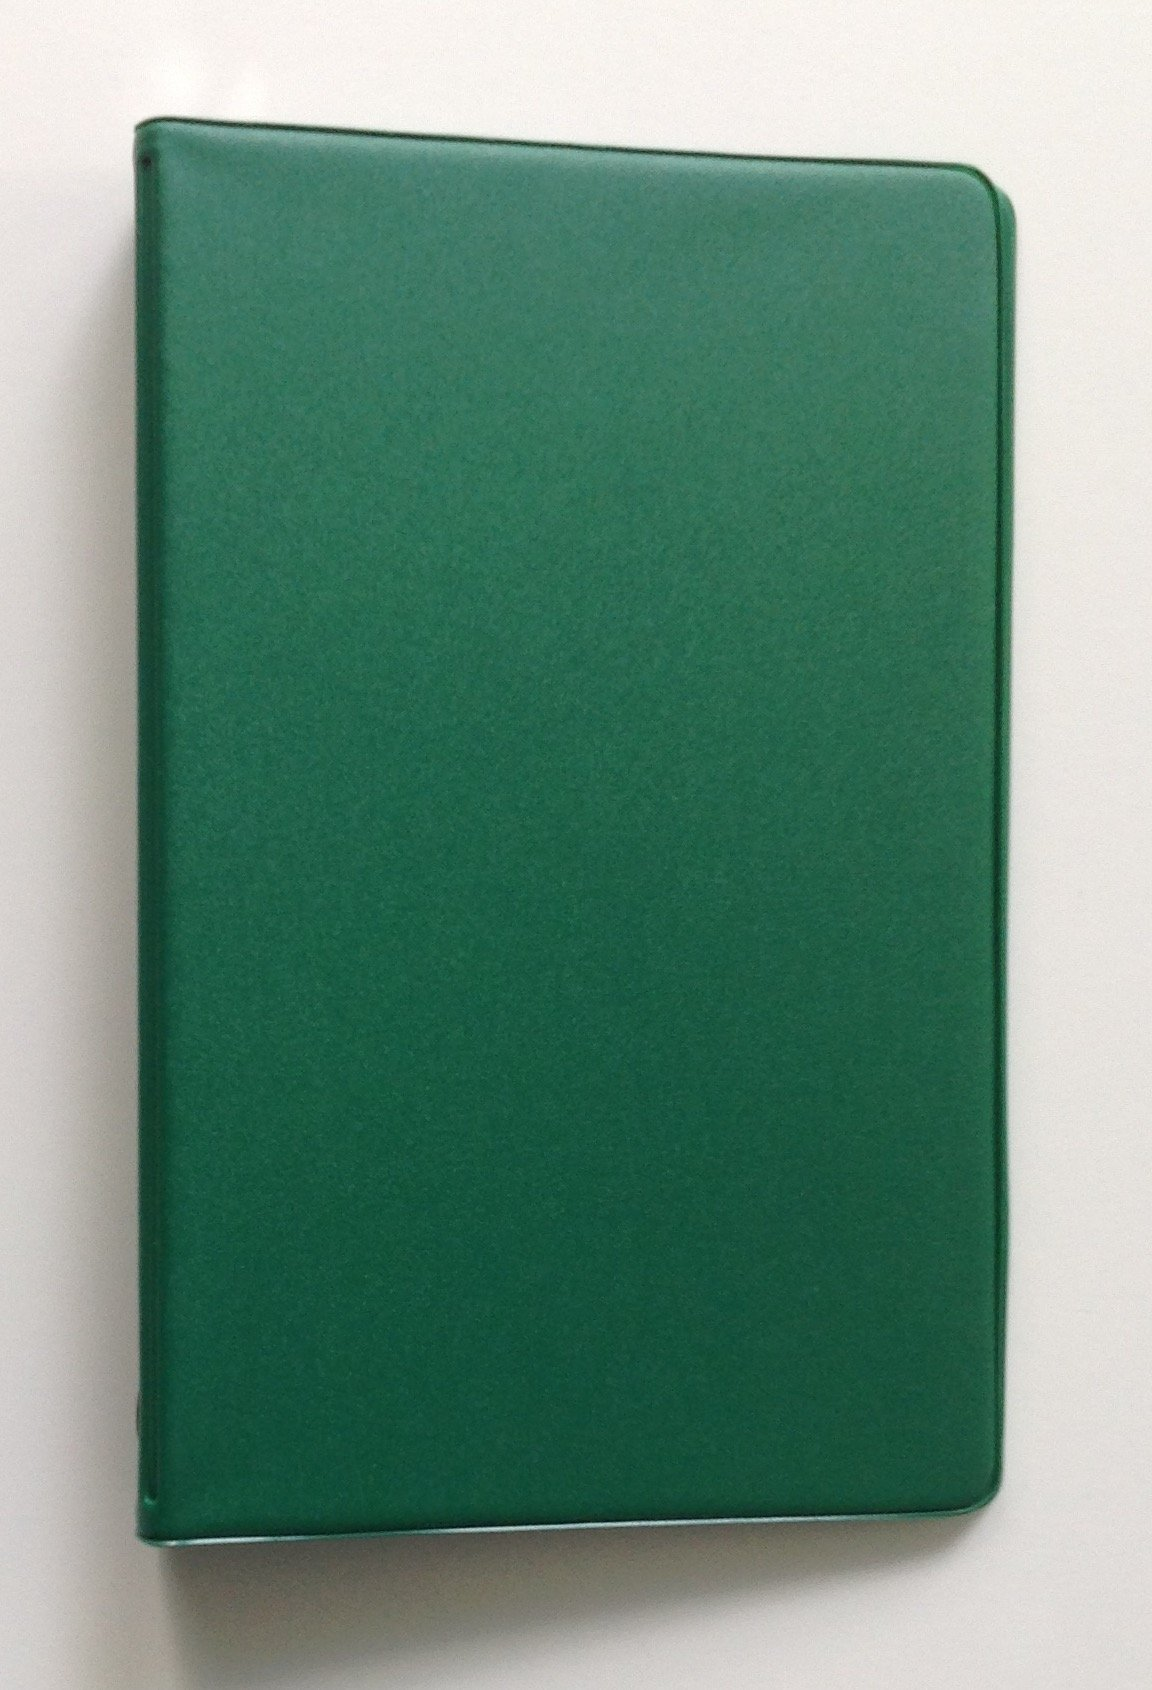 Mead 46001 Small 6-Ring Green Vinyl Loose-Leaf Memo Notebook with 6-3/4 x 3-3/4-inch Lined Paper (40 Sheets)